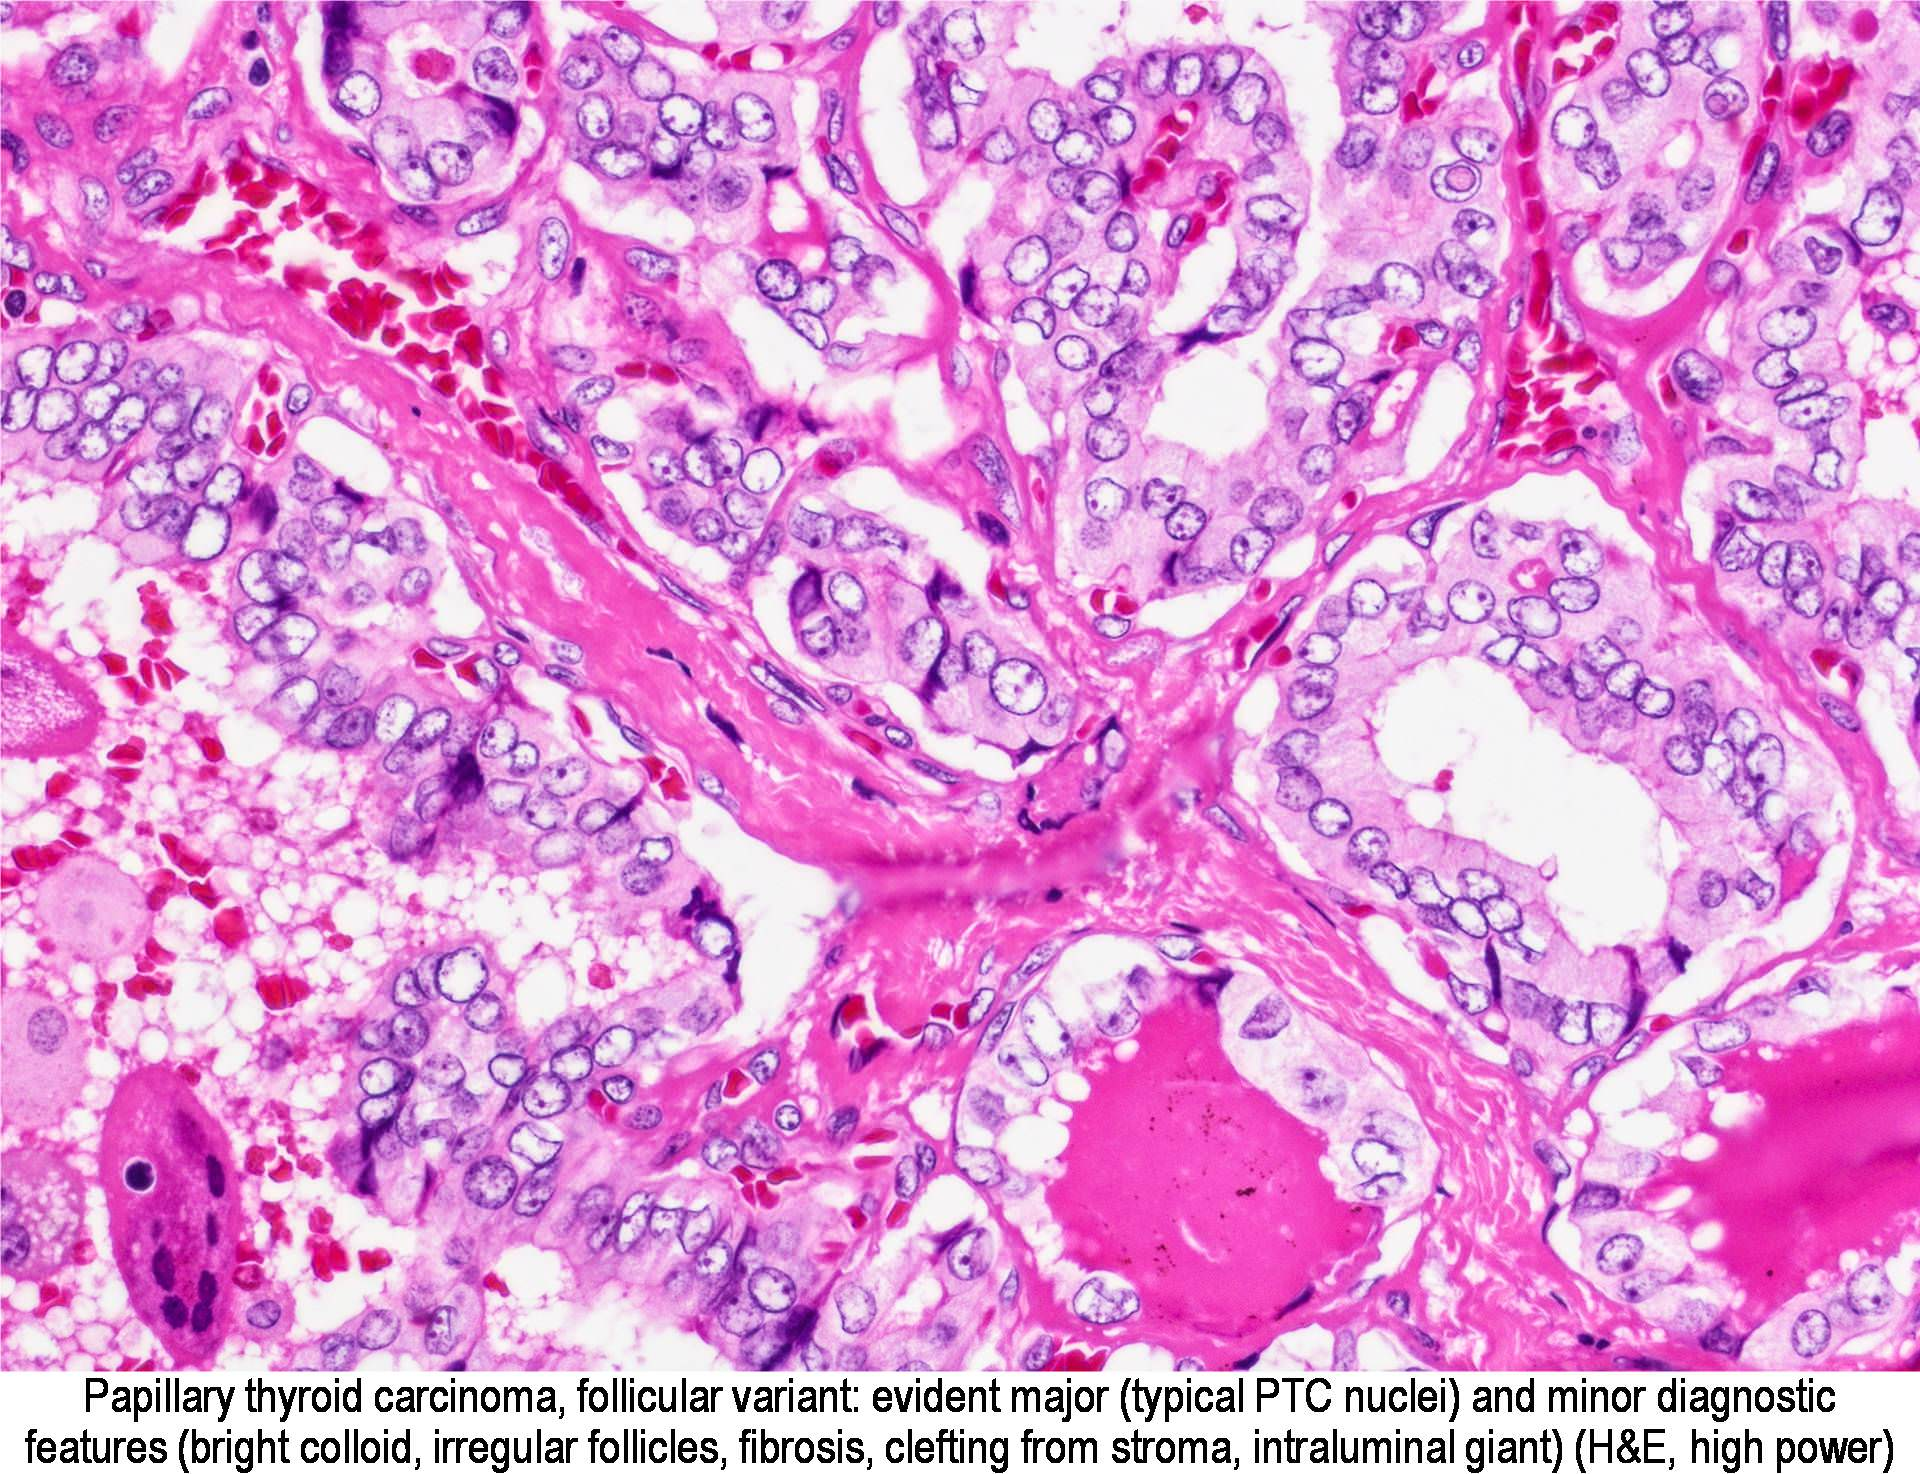 papillary thyroid carcinoma of follicular variant